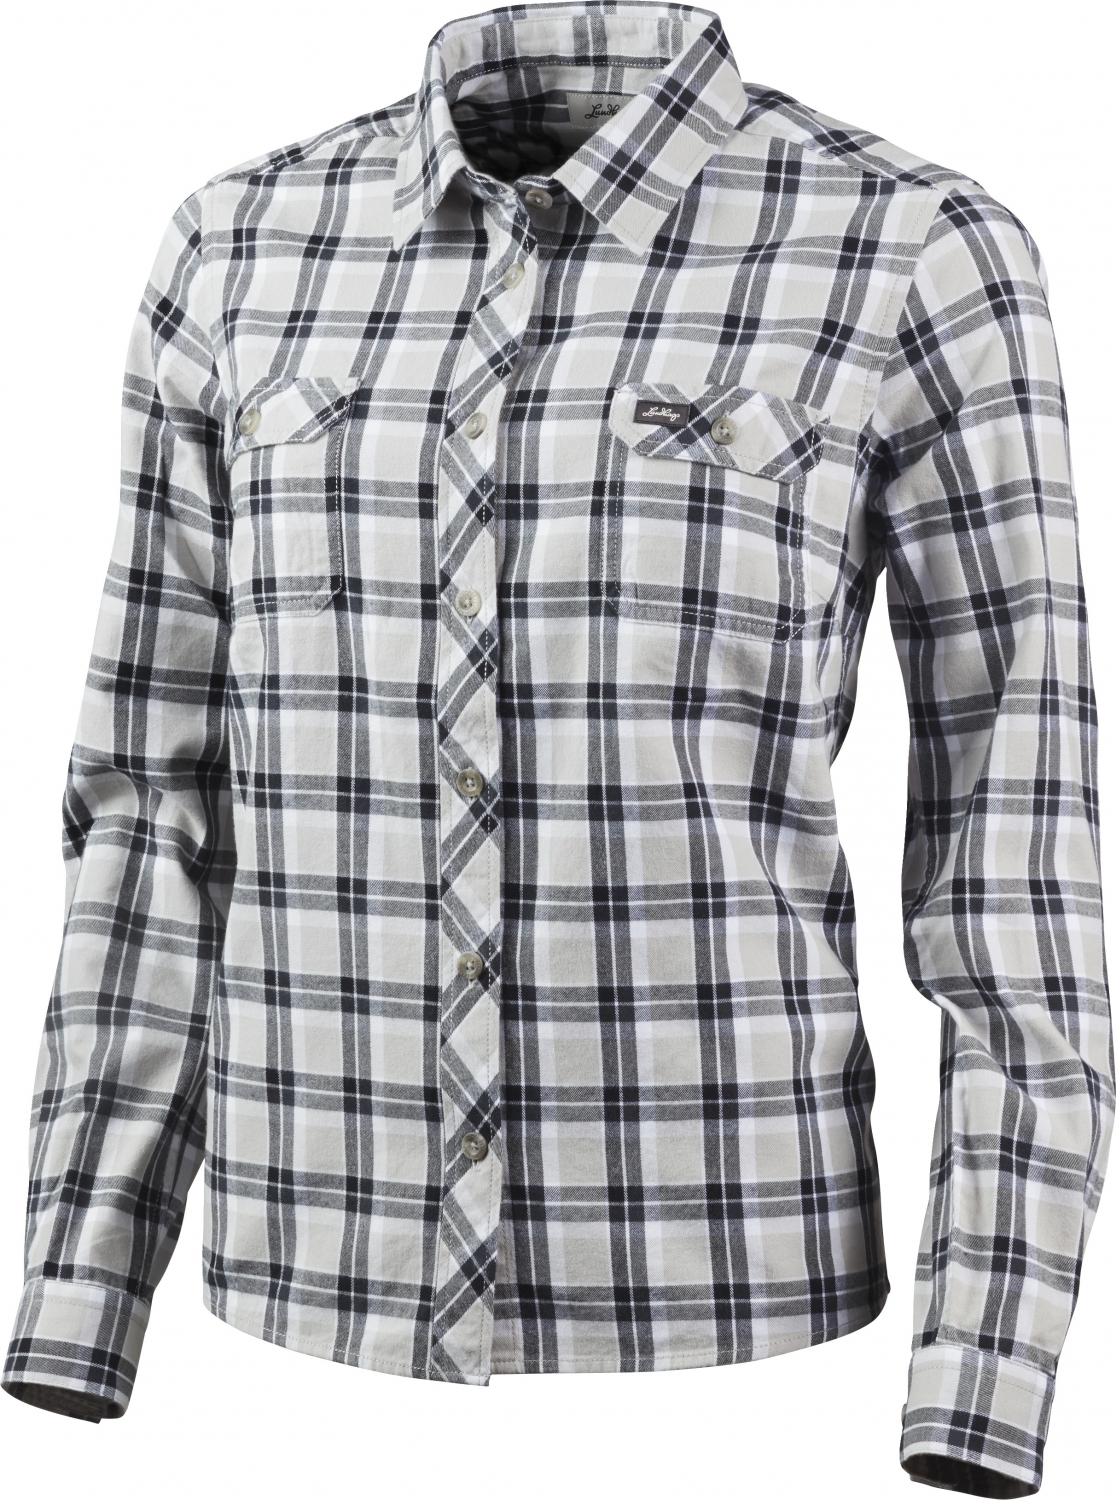 Pine//Charcoal Lundhags Flanell Ws Shirt Outdoorhemd